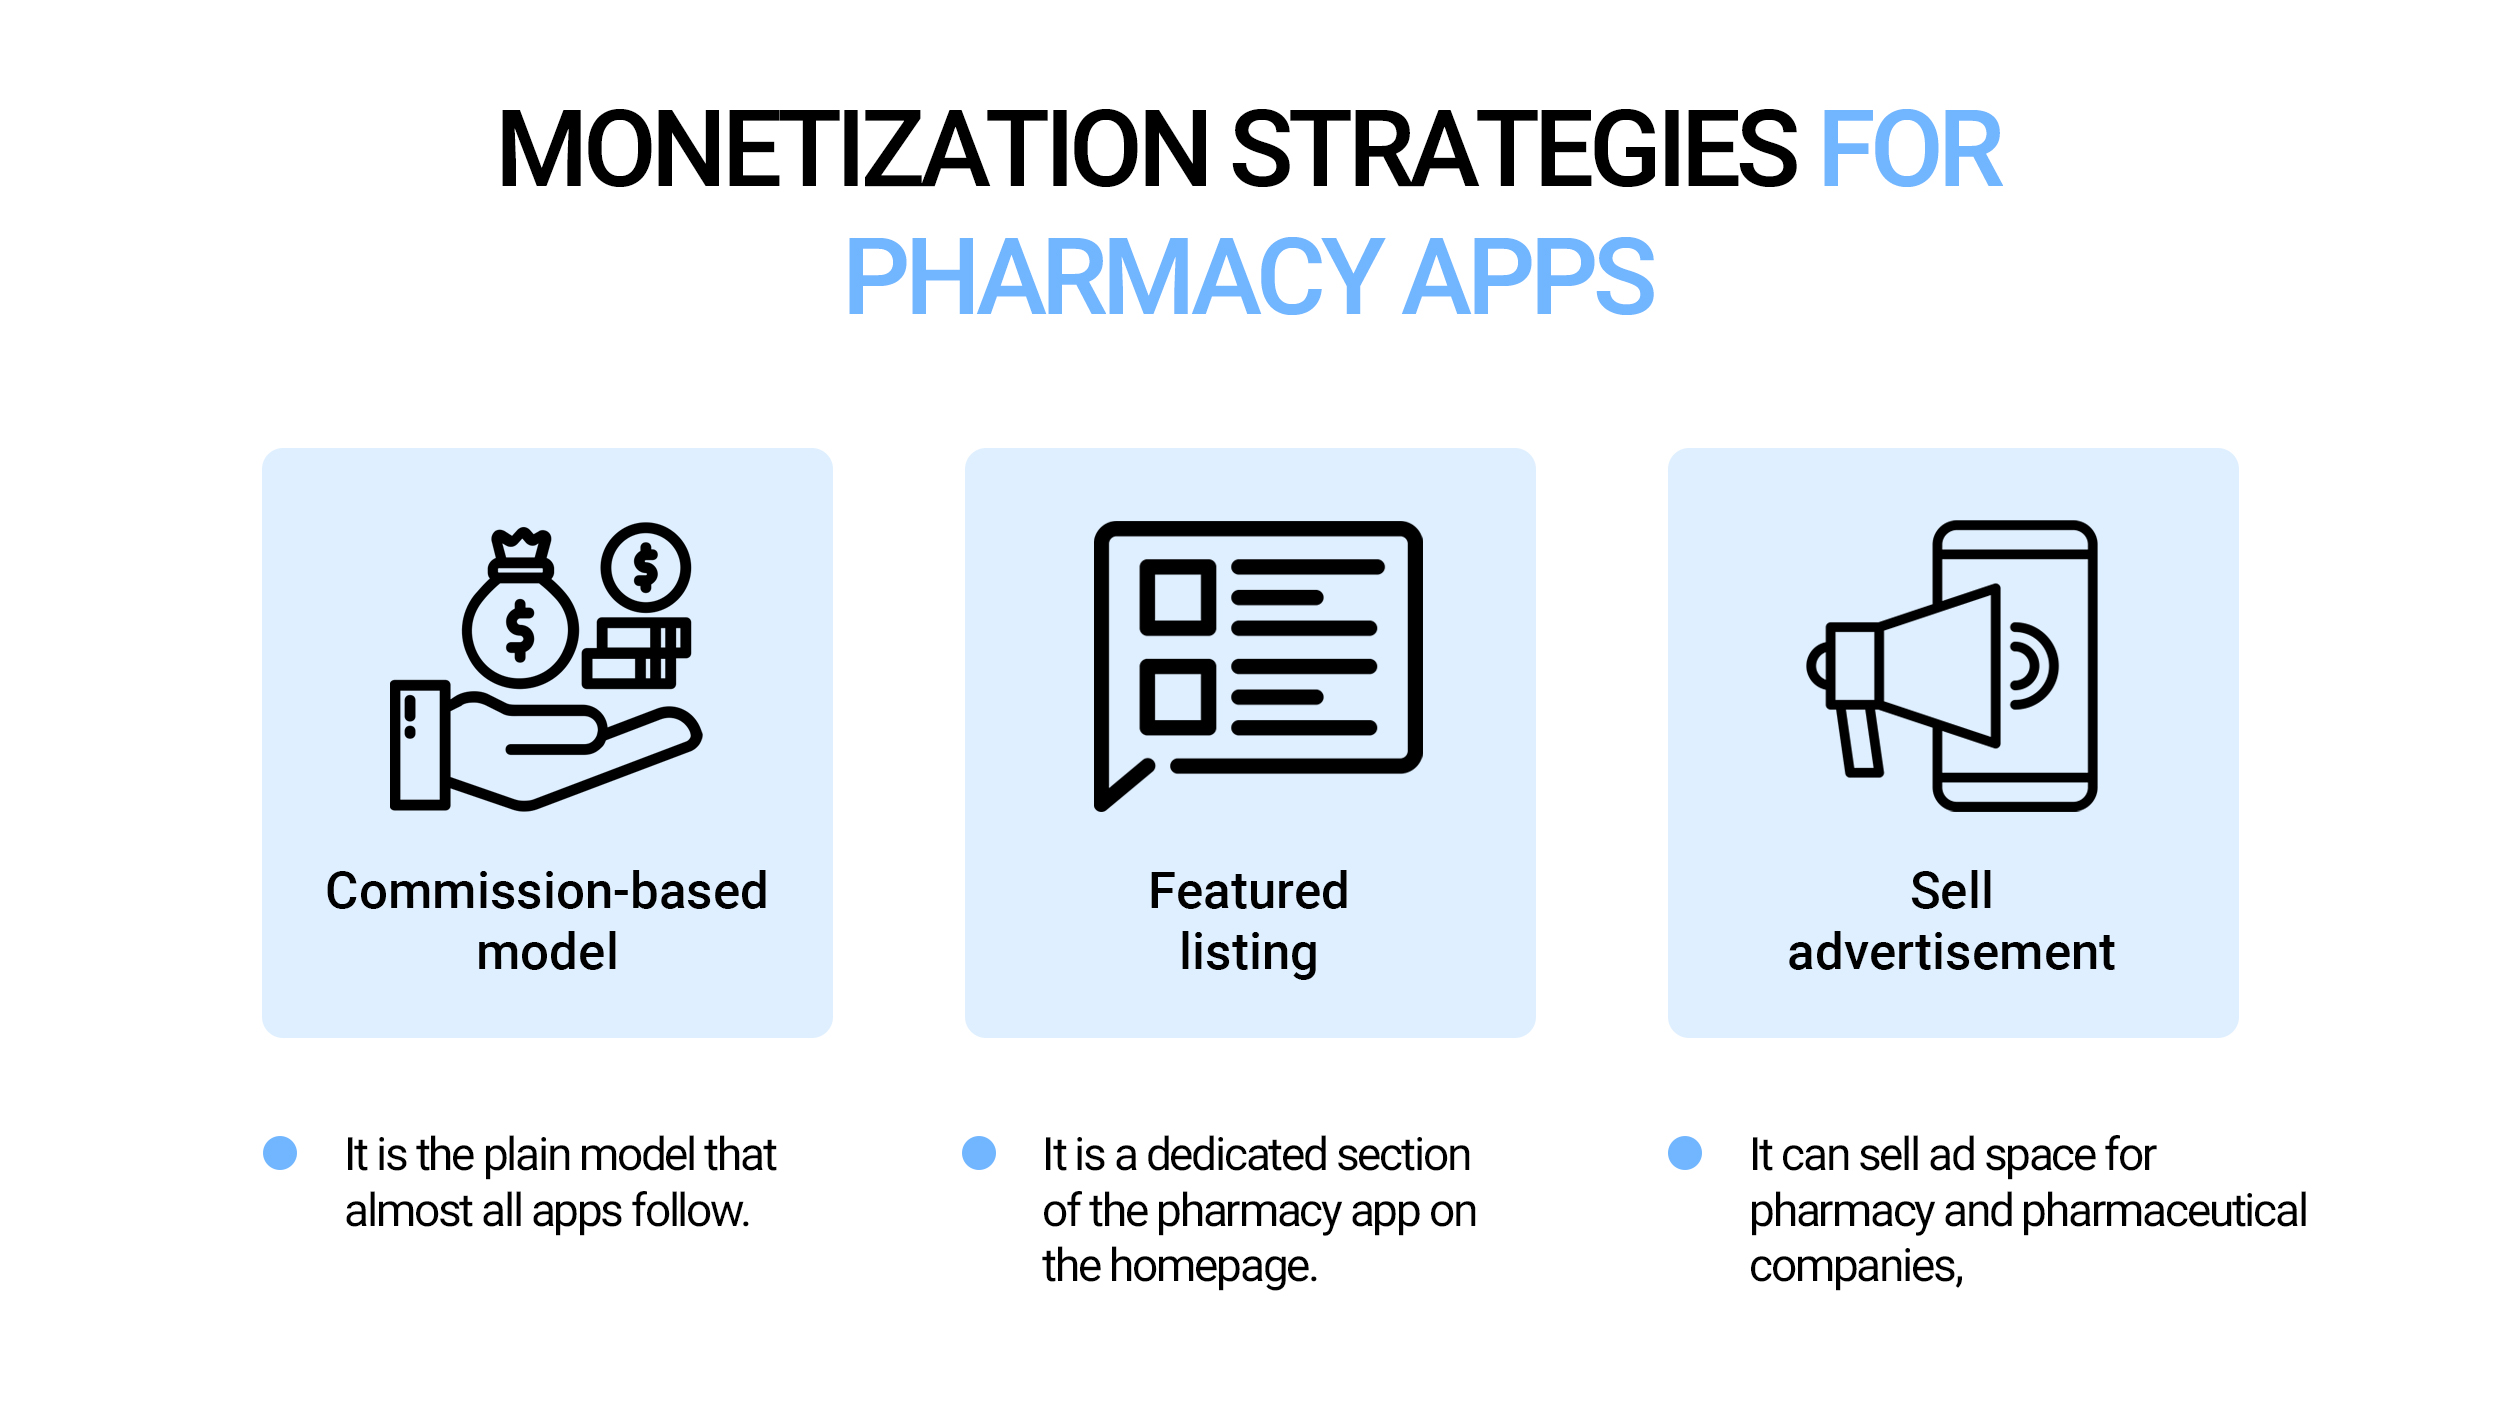 Monetization strategies for pharmacy apps